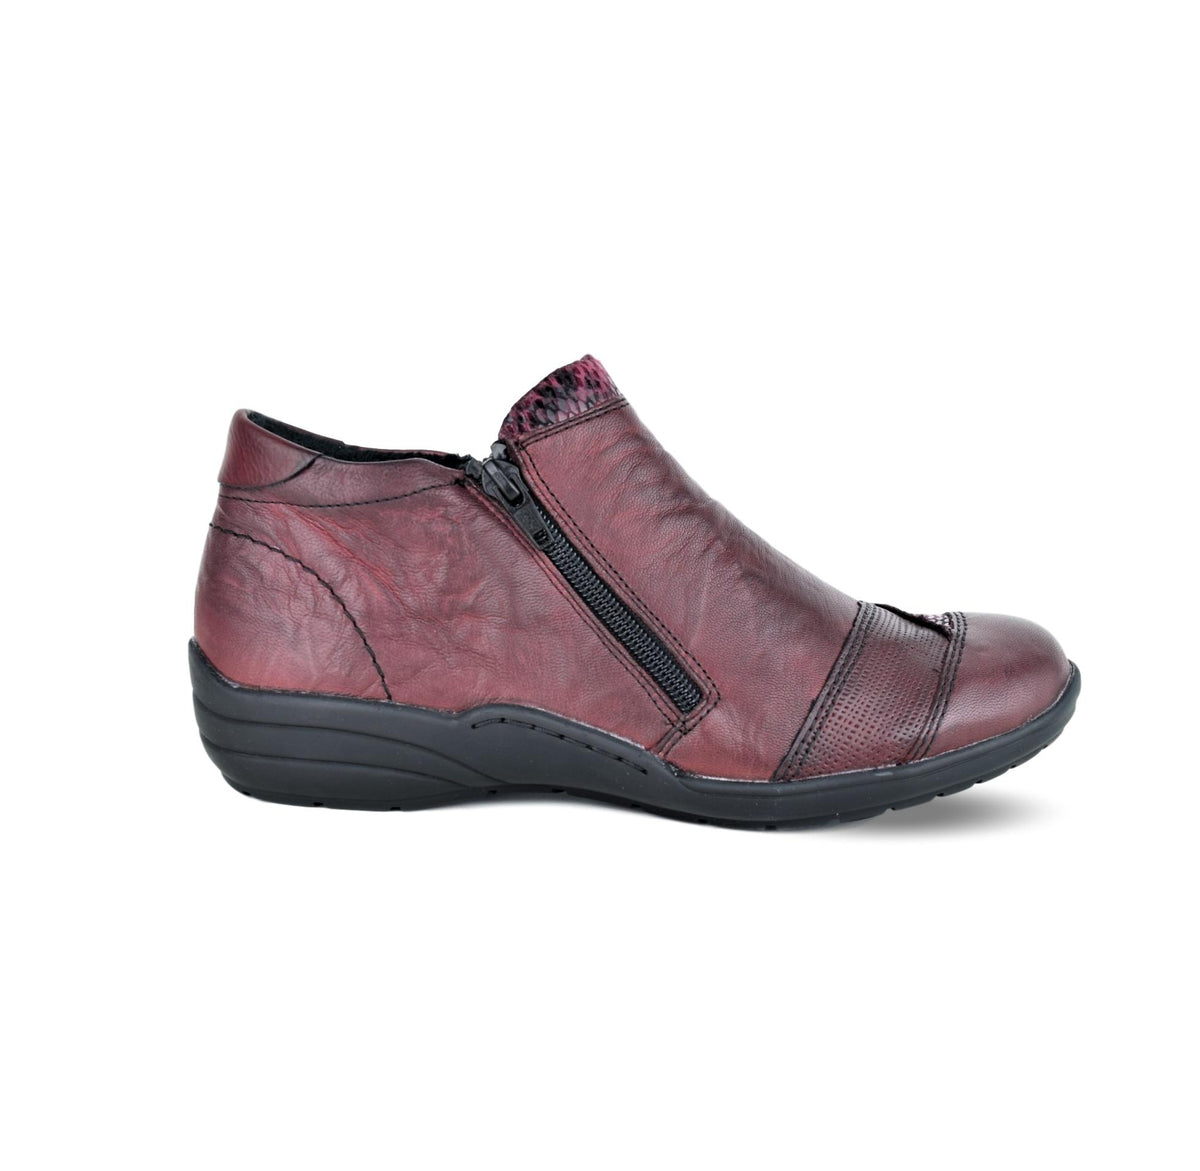 ELMA2 - Remonte Ankle Boots Burgandy